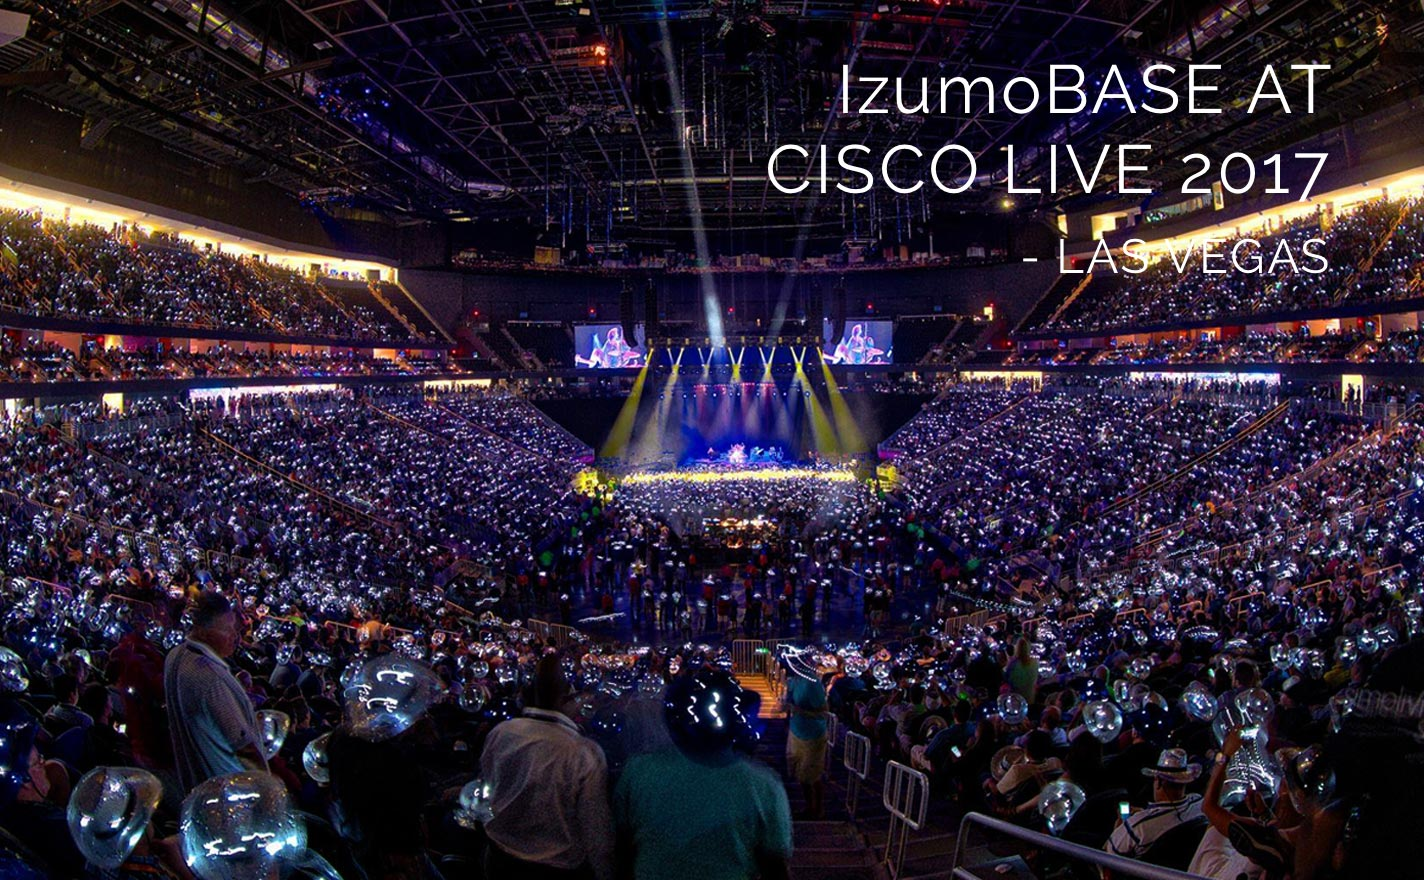 IzumoBASE at Cisco Live 2017 Las Vegas